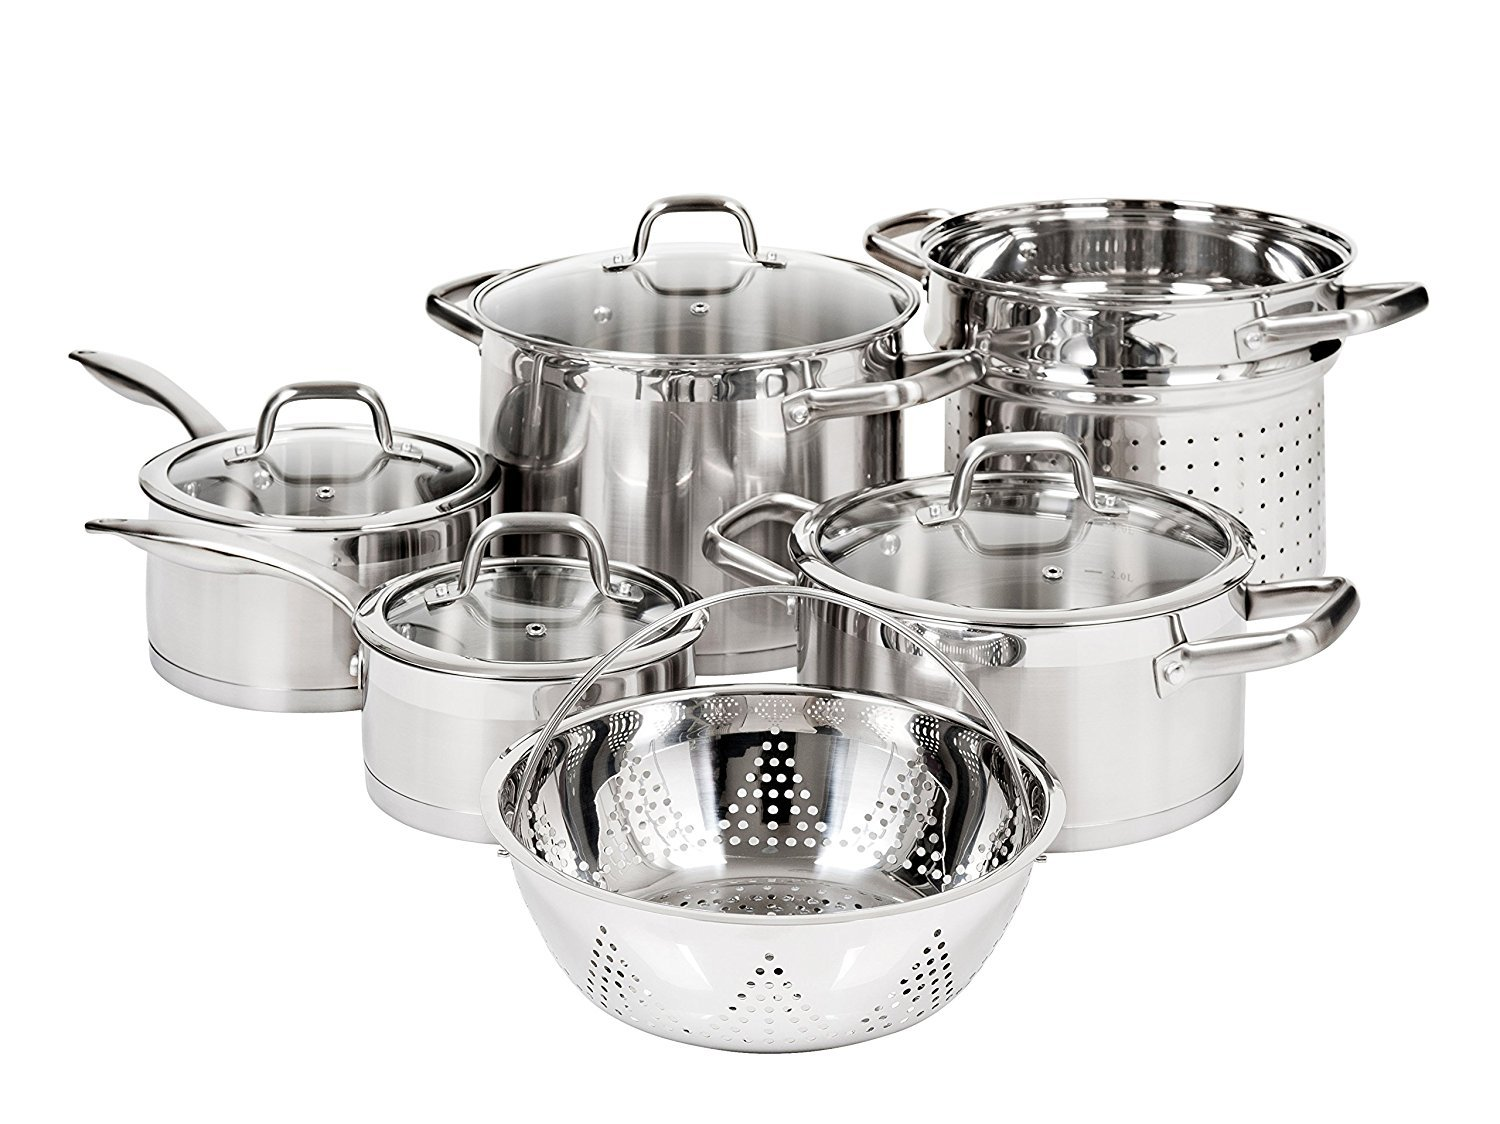 Duxtop Professional Stainless Steel Cookware Set Review